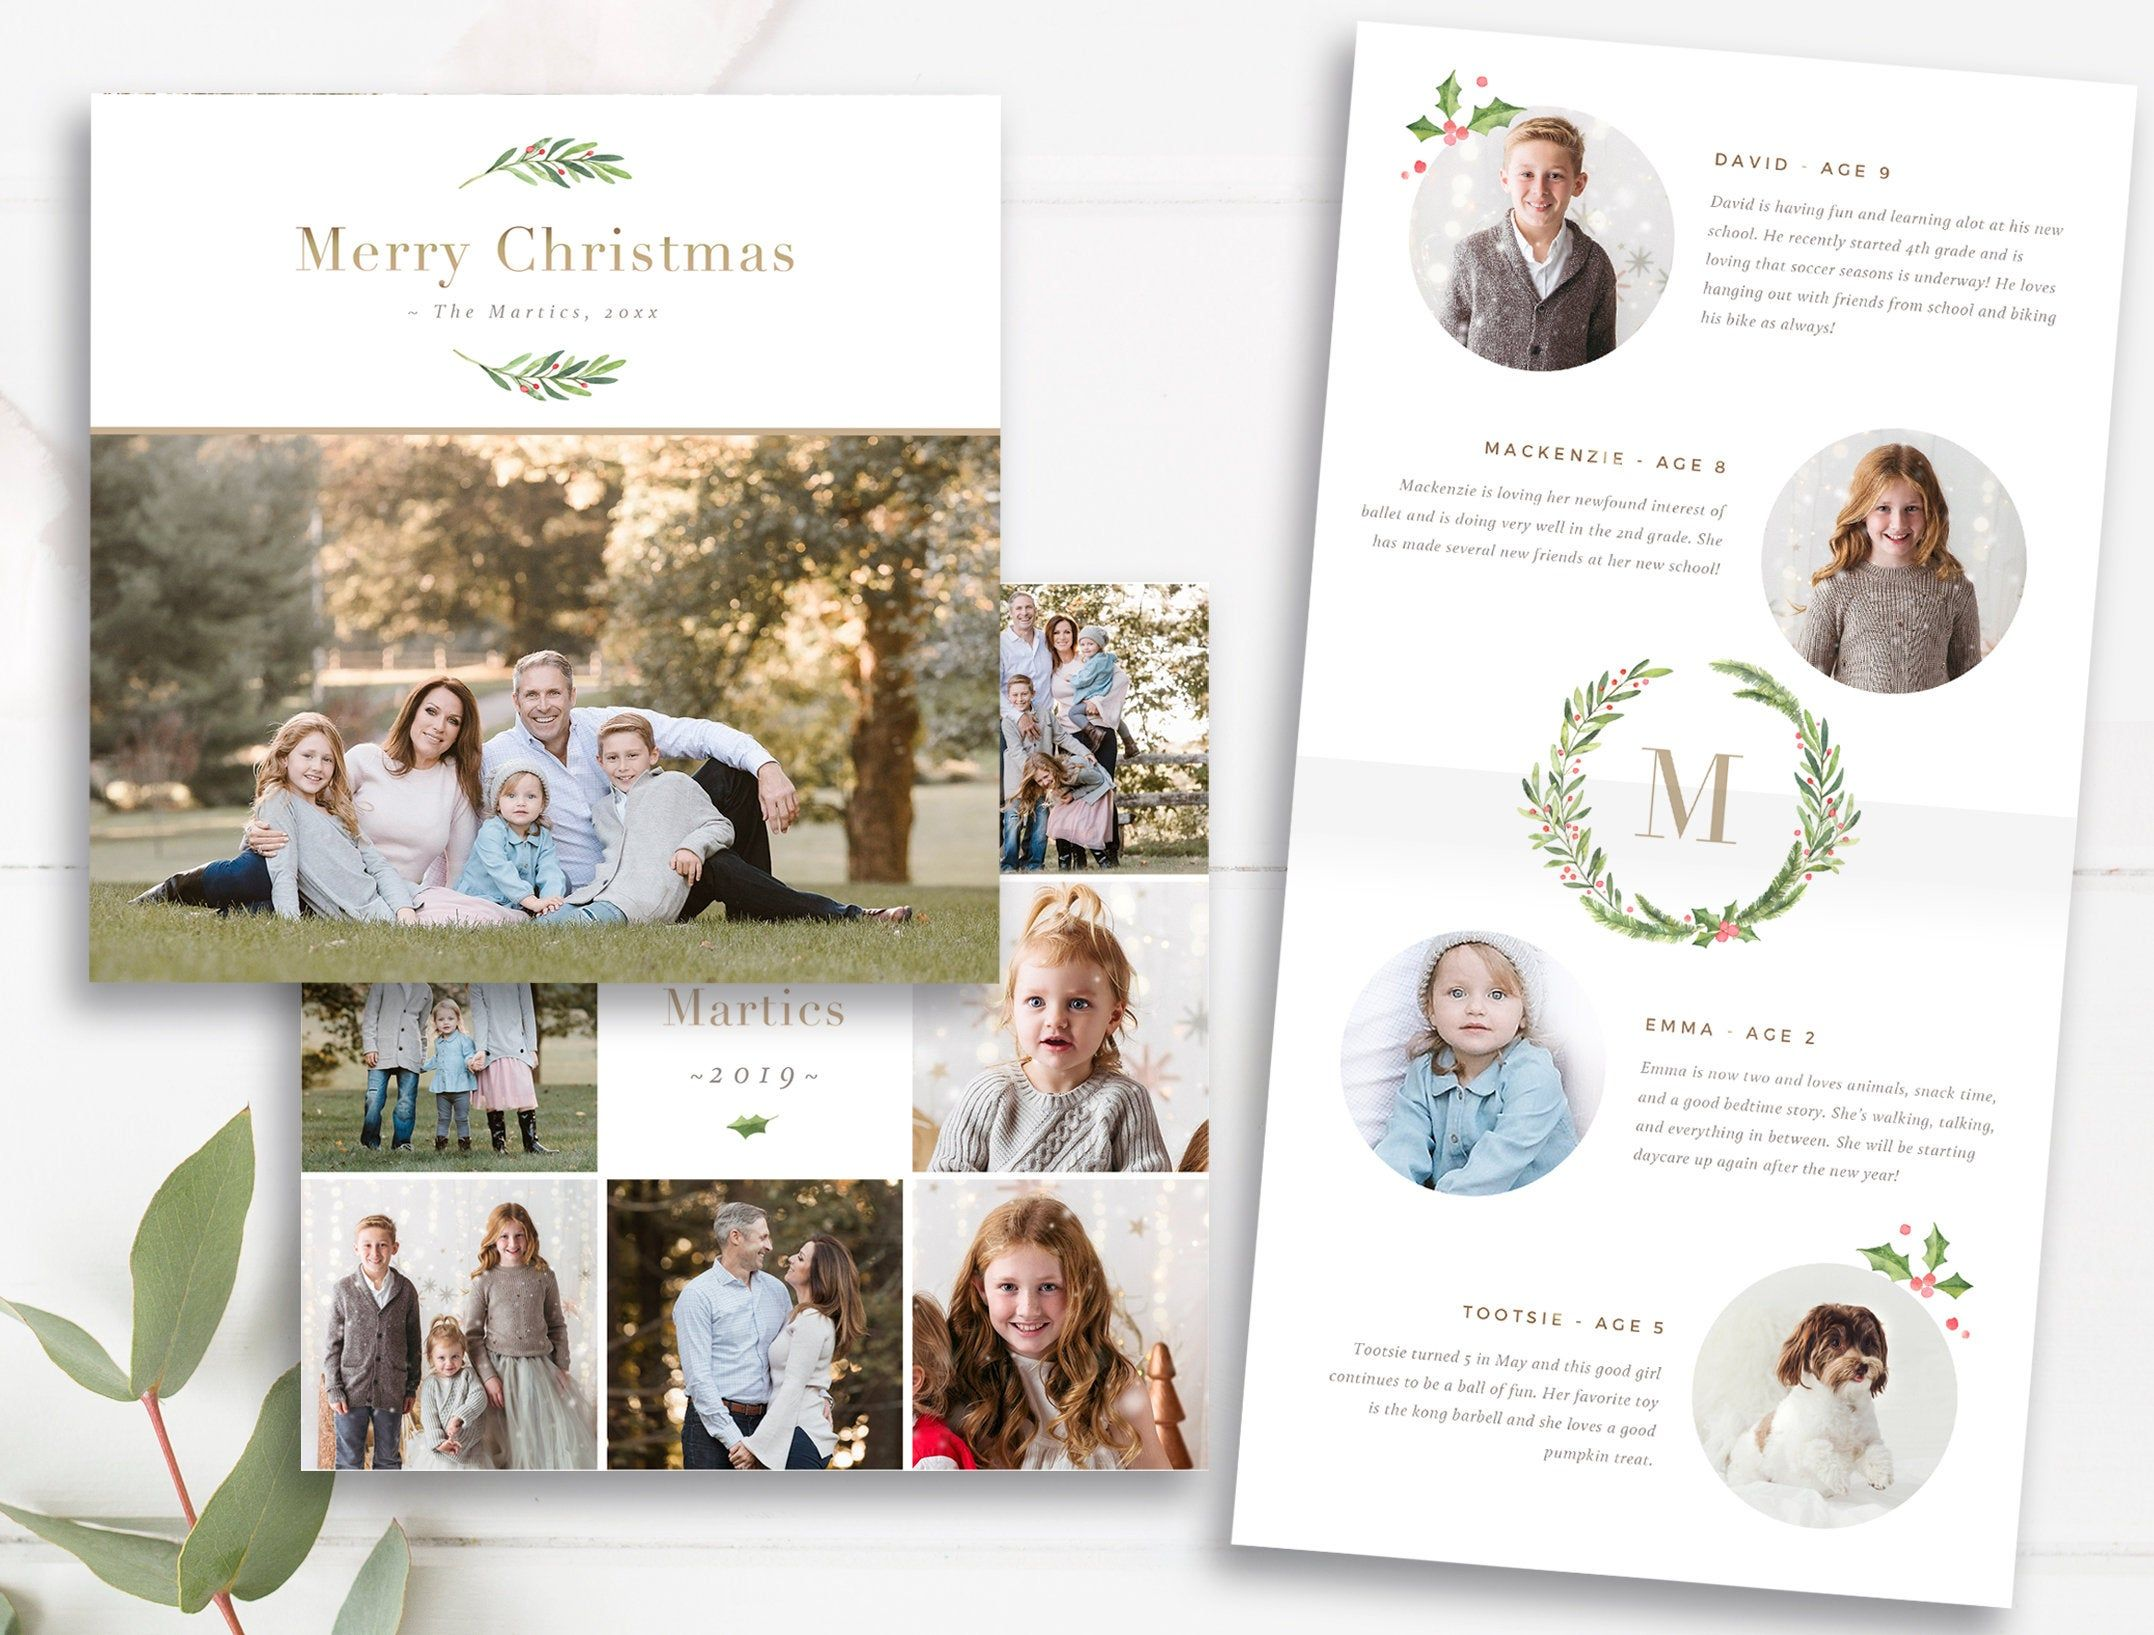 Folded Christmas Card Pano Spreads Millers Lab Folded Card Etsy In 2021 Christmas Card Template Photoshop Template Design Card Template